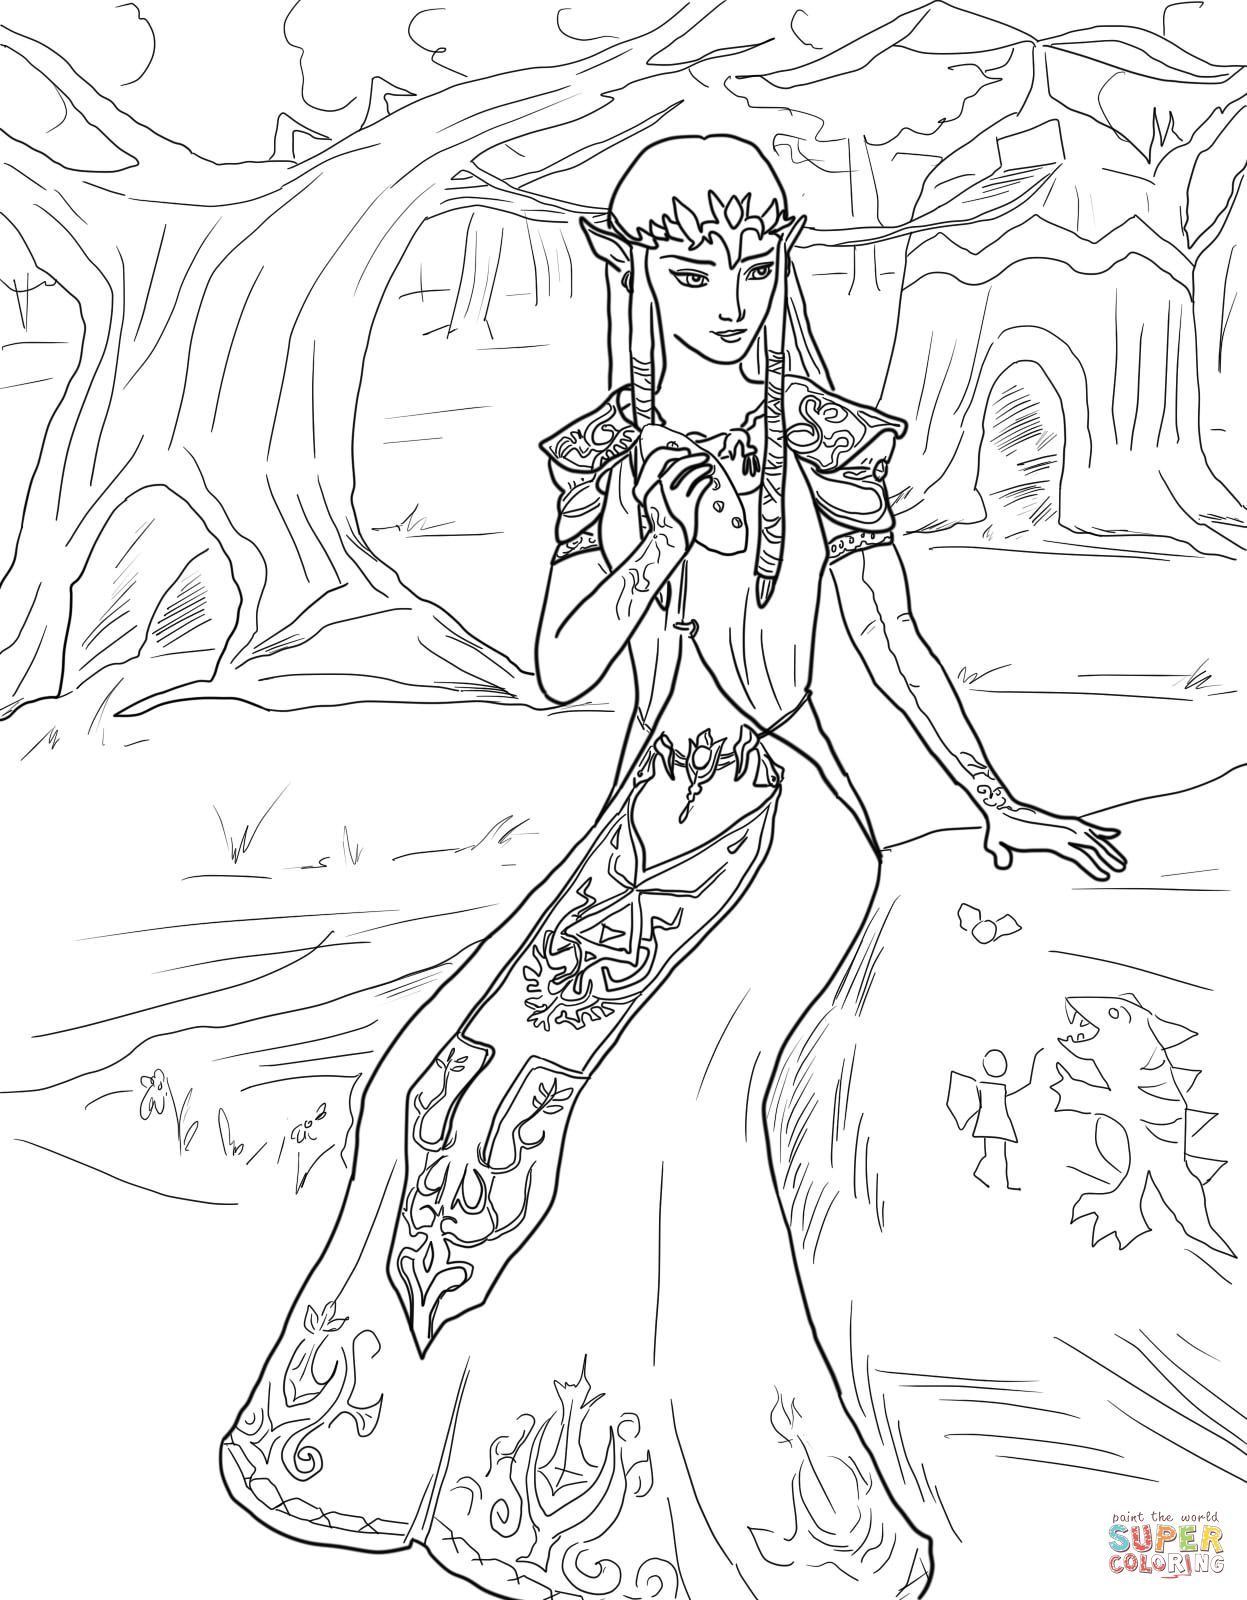 Legend Of Zelda Twilight Princess Coloring Page Princess Coloring Pages Princess Coloring My Little Pony Coloring